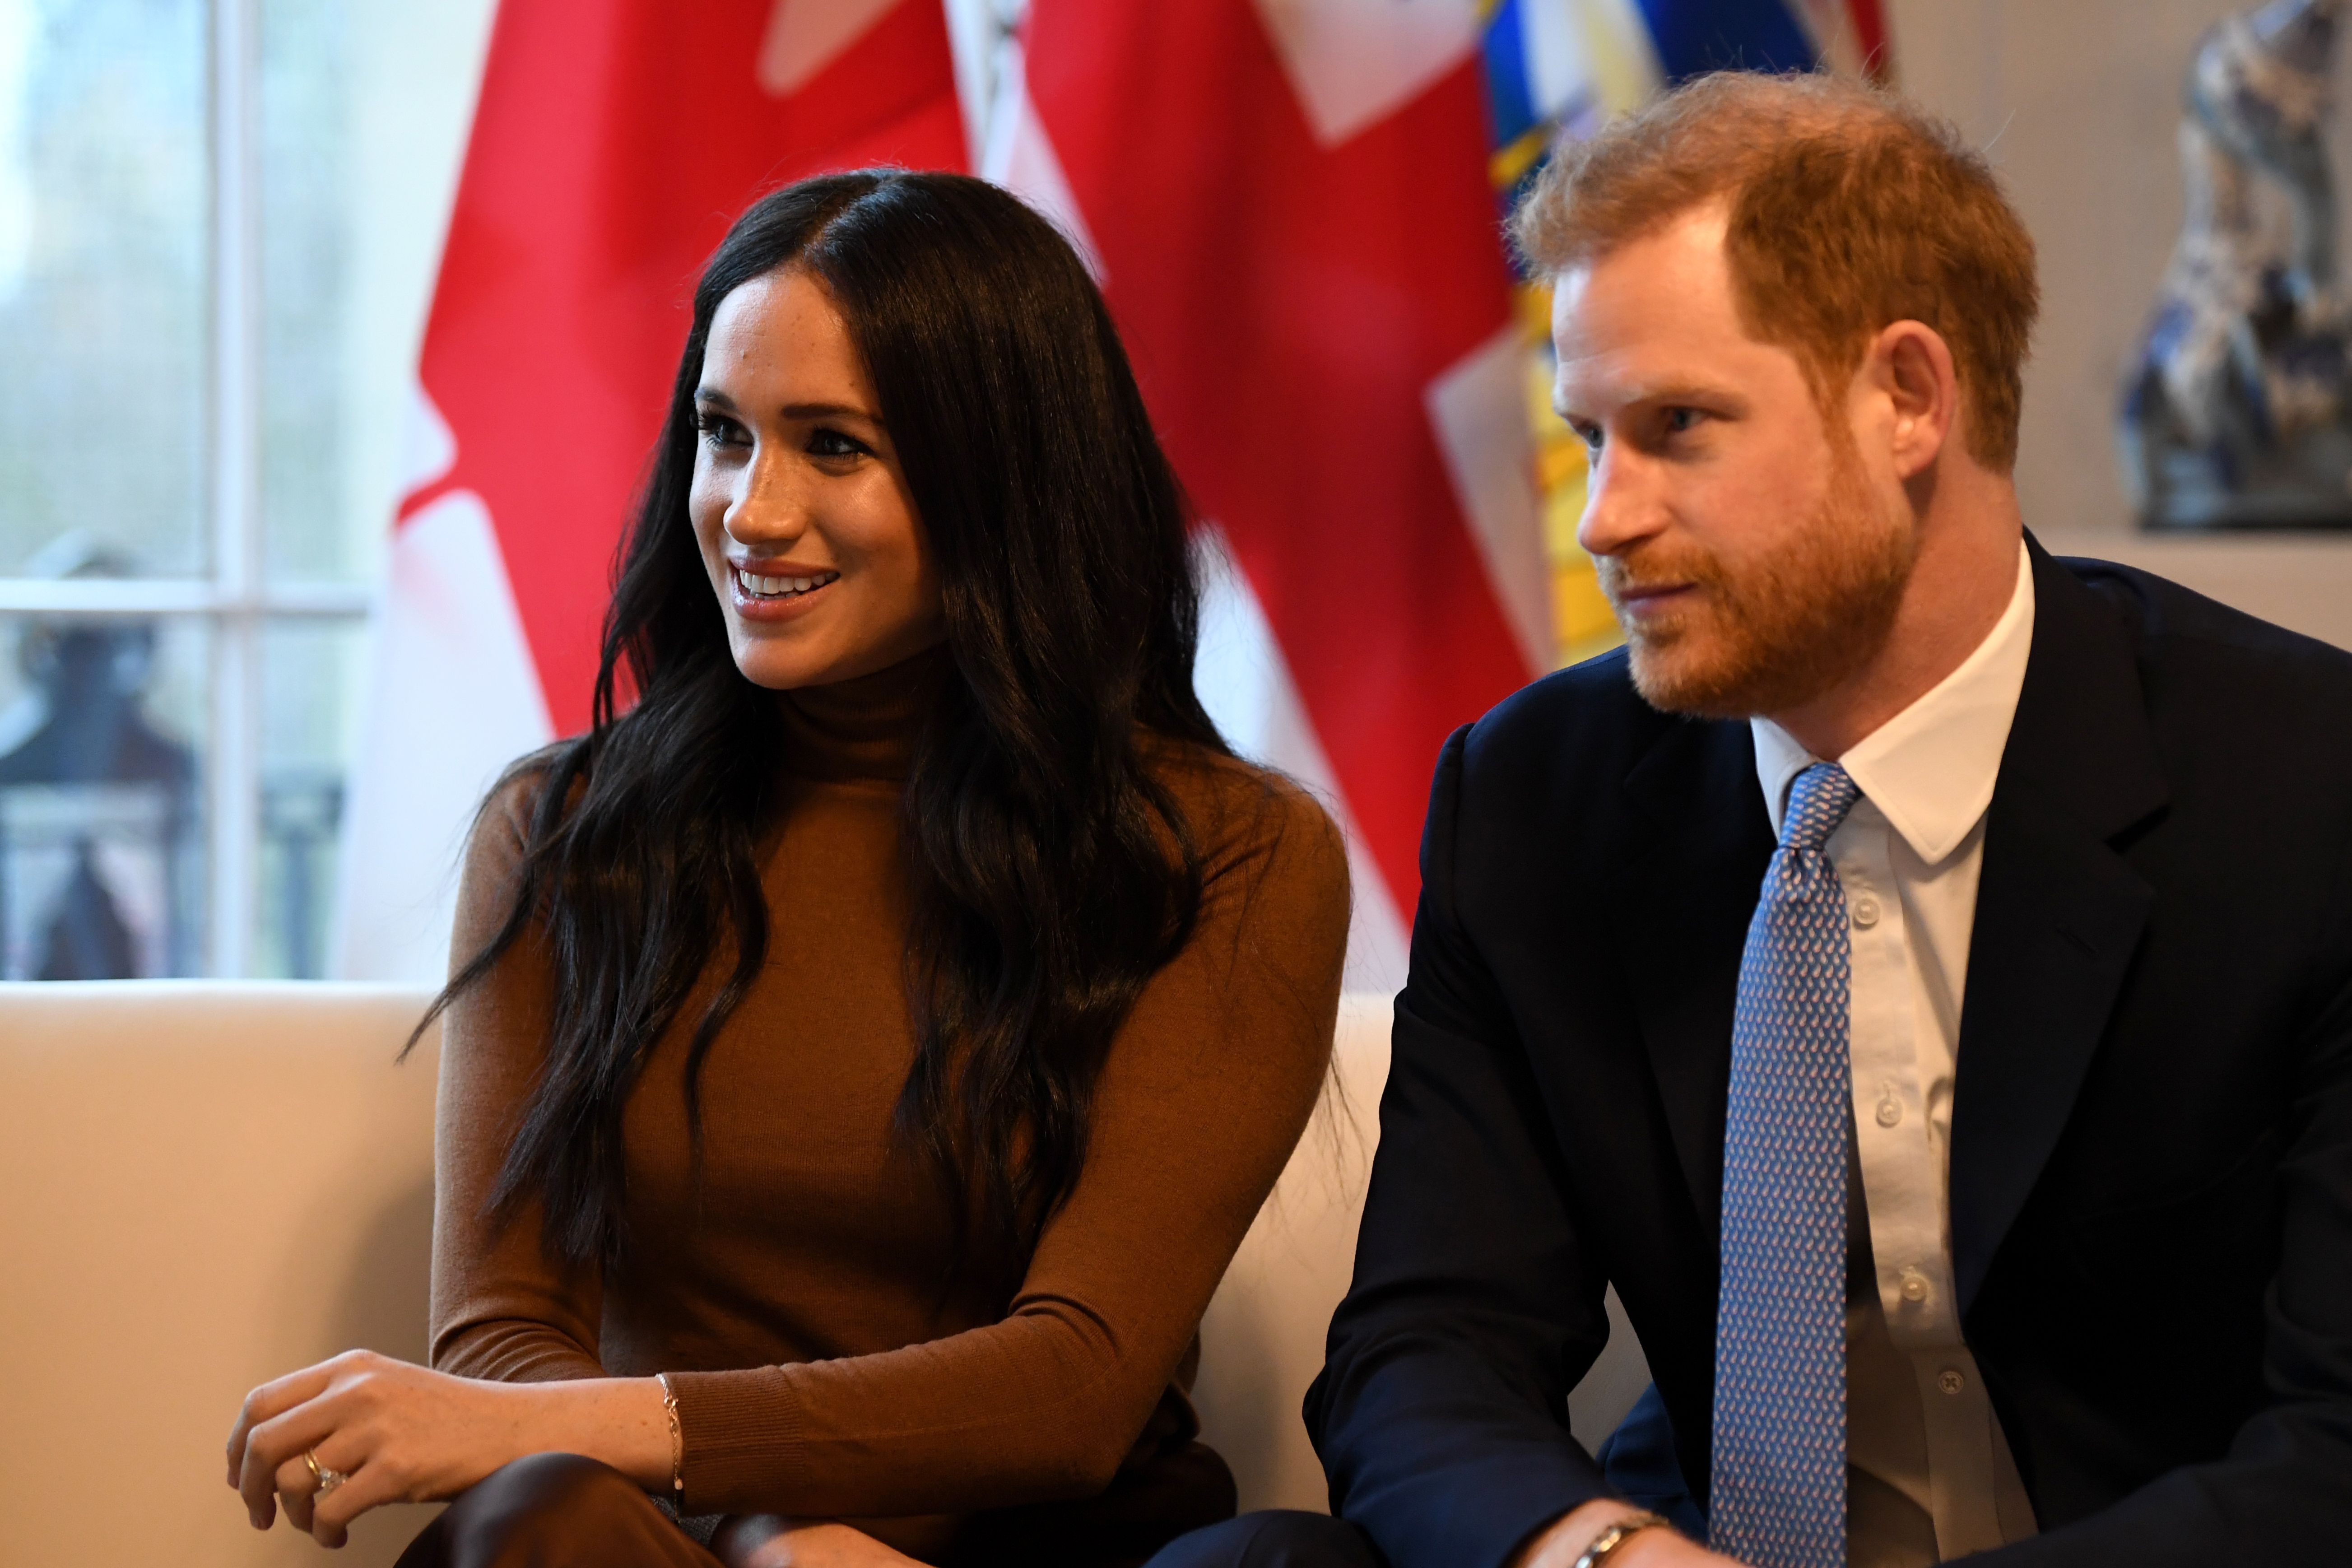 Prince Harry and Meghan Markle Were Photographed Smiling Together on Valentine's Day